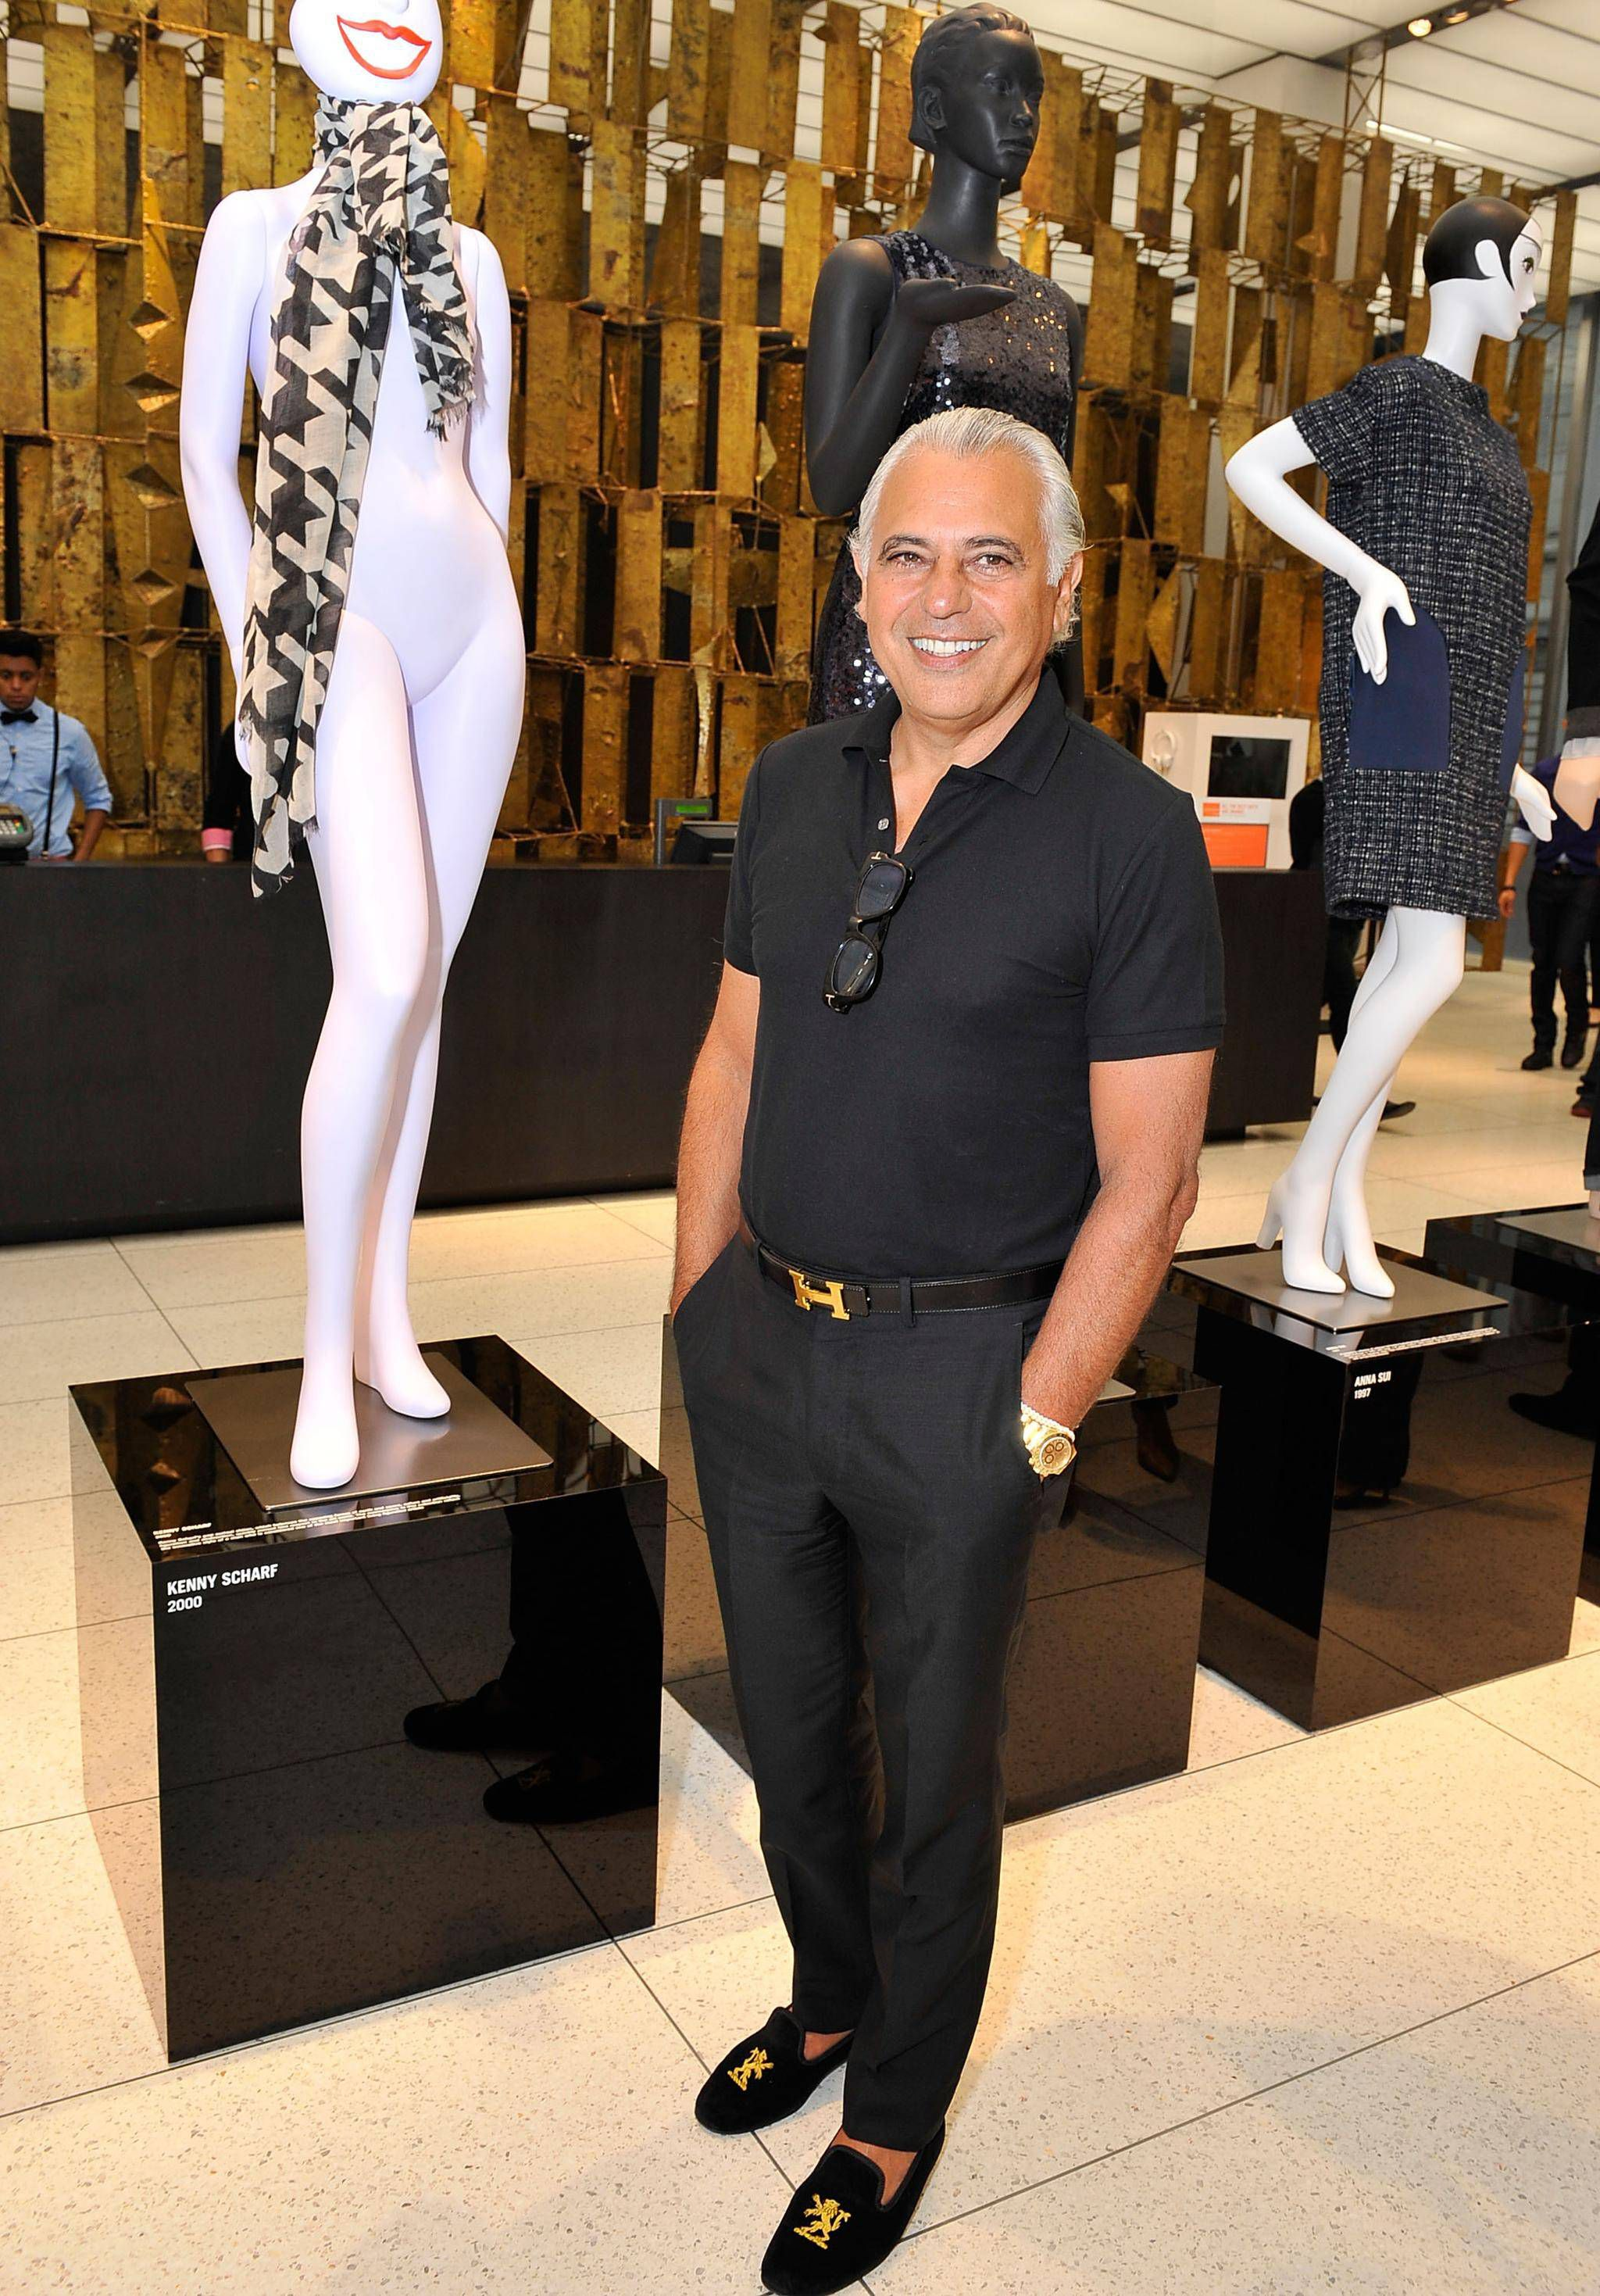 How Joseph Mimran Founder Of Club Monaco And Joe Fresh Invests His Money The Globe And Mail